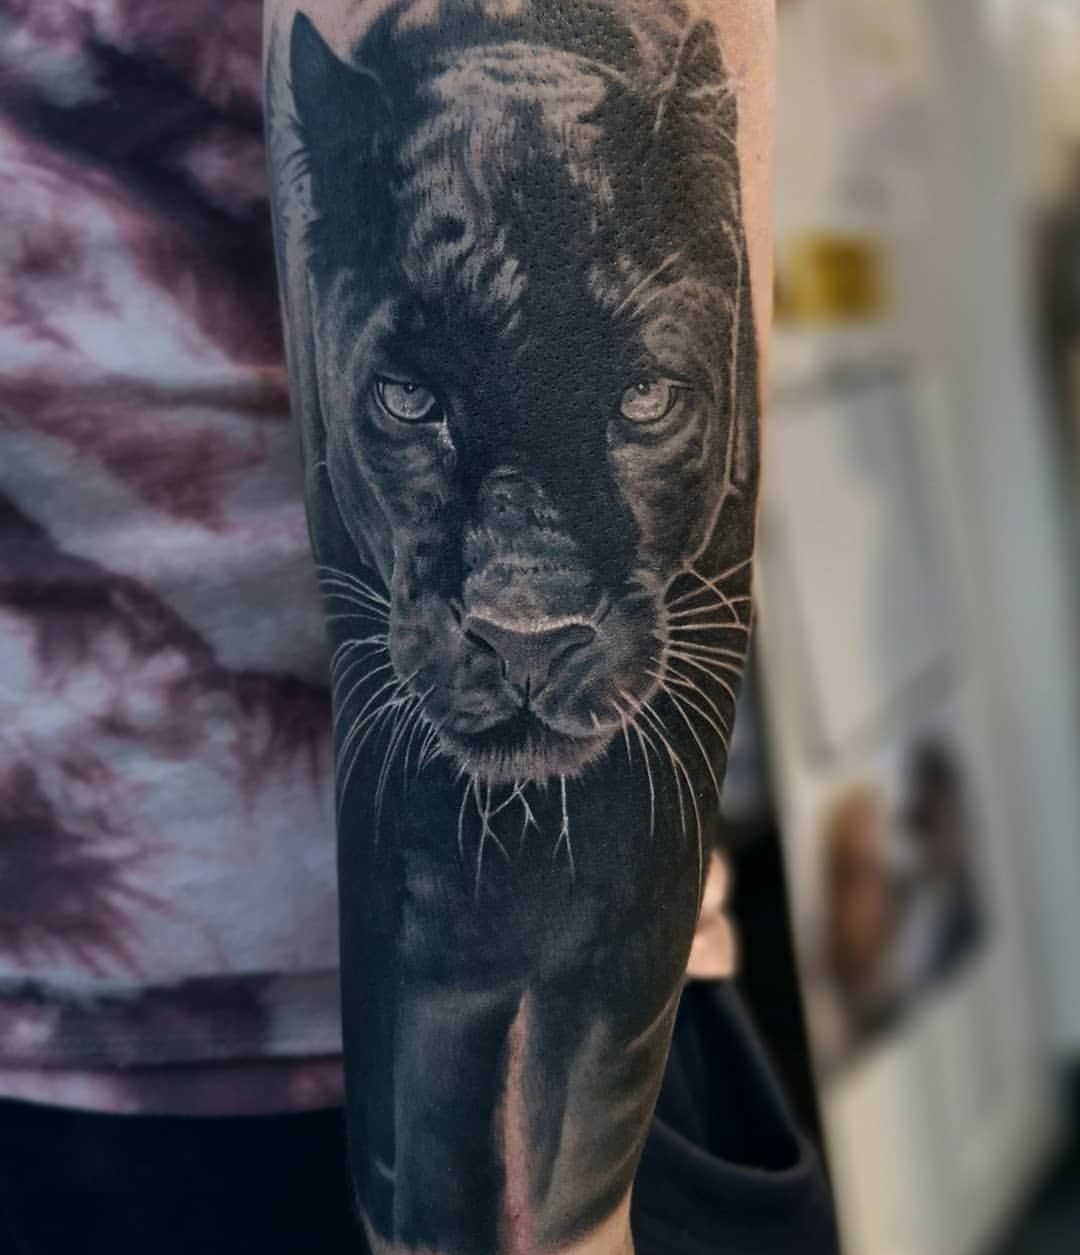 View All Instagram Posts Videos And Stories On Somegram Com Somegram Tattoo Tattoos Instawebviewer Black Panther Tattoo Panther Tattoo Big Cat Tattoo